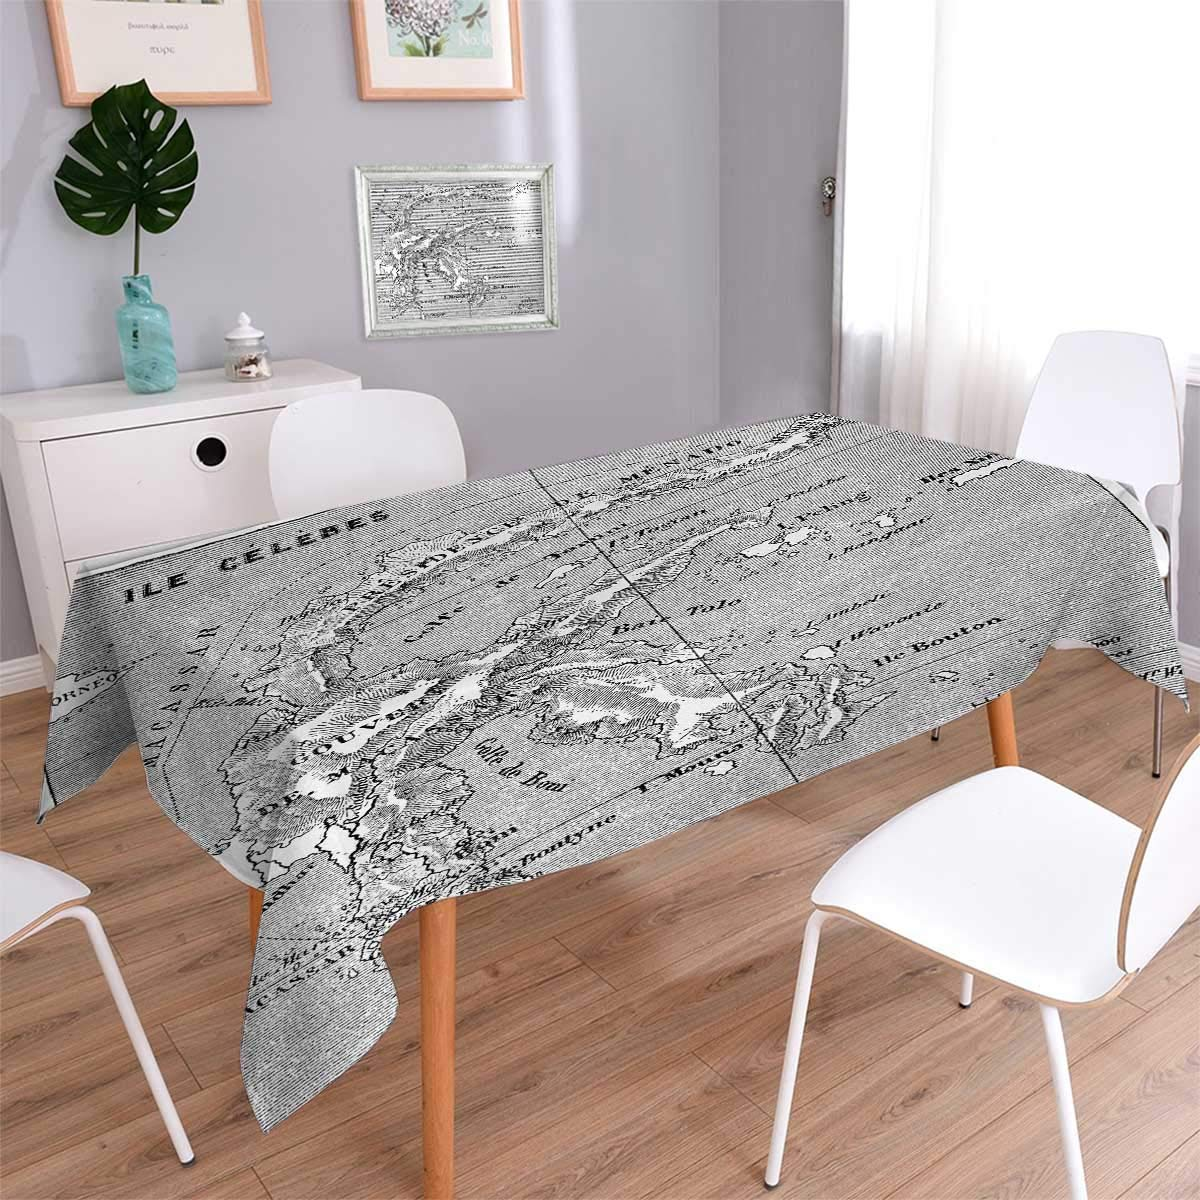 Anmaseven Island Map Oblong Customized Tablecloth Vintage Style French Map Chart of Sulawesi Island Mediterranean Destination Stain Resistant Wrinkle Tablecloth Black and White Size: W54 x L72